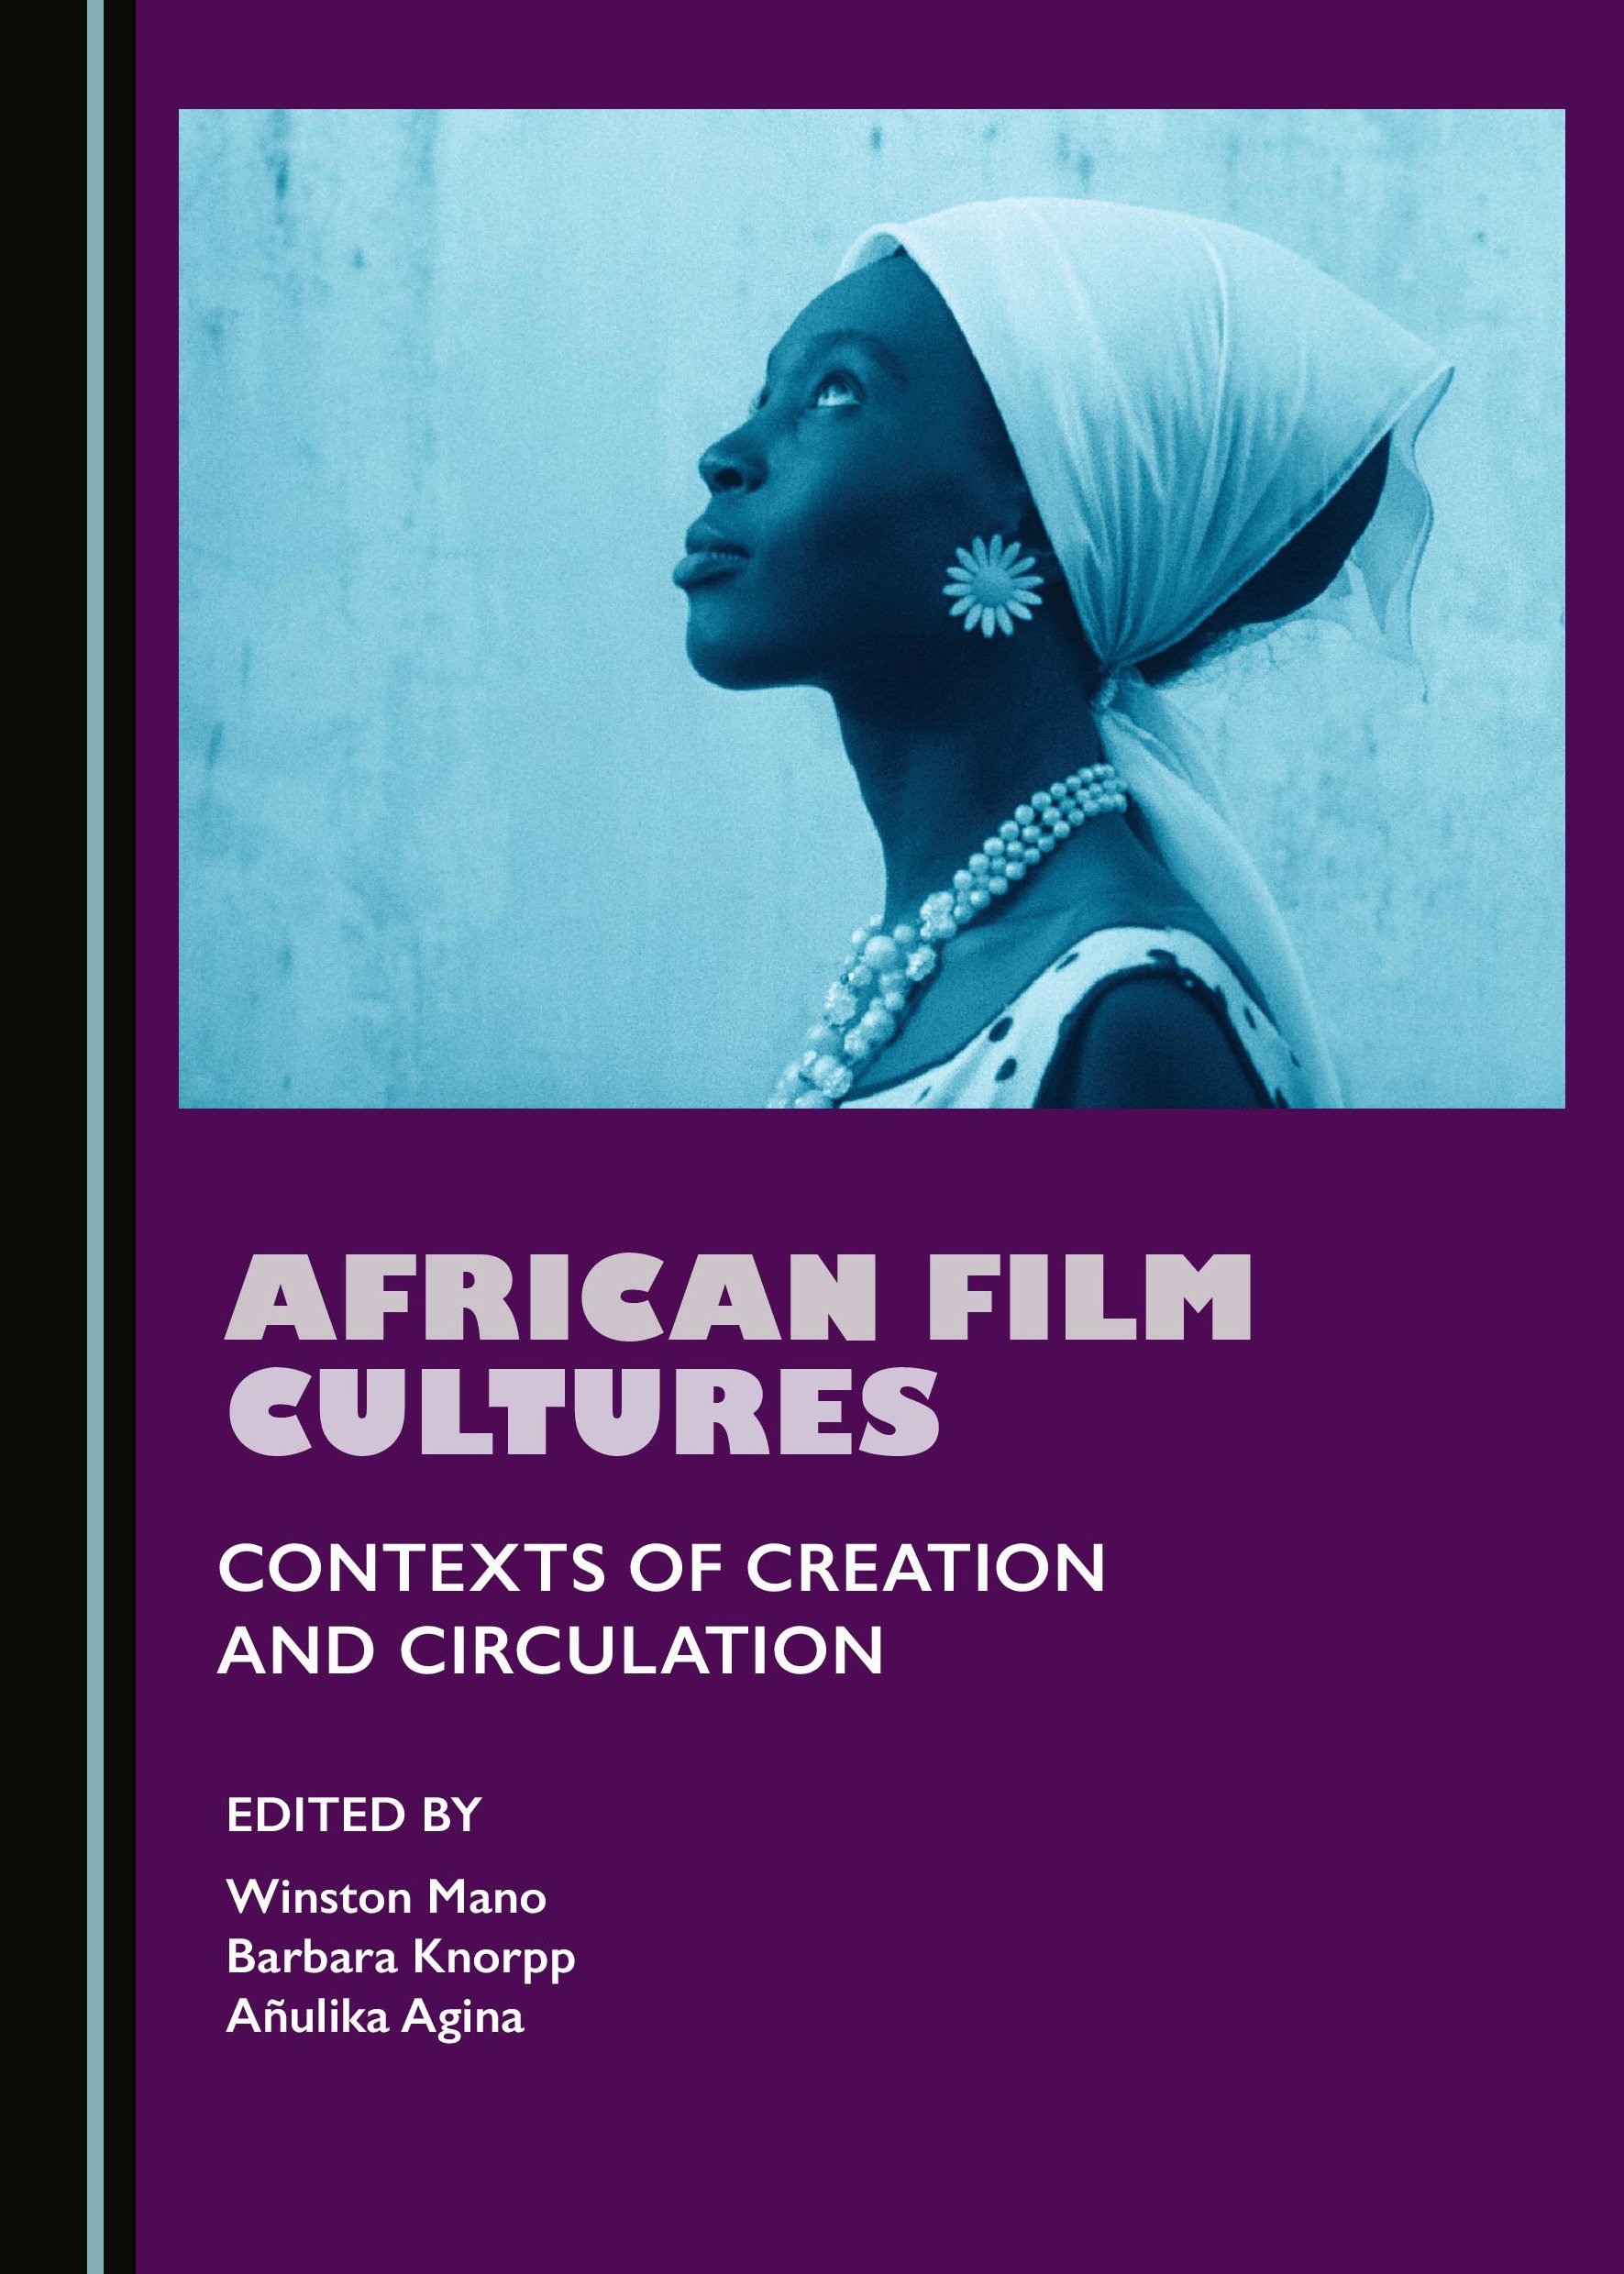 African Film Cultures: Contexts of Creation and Circulation